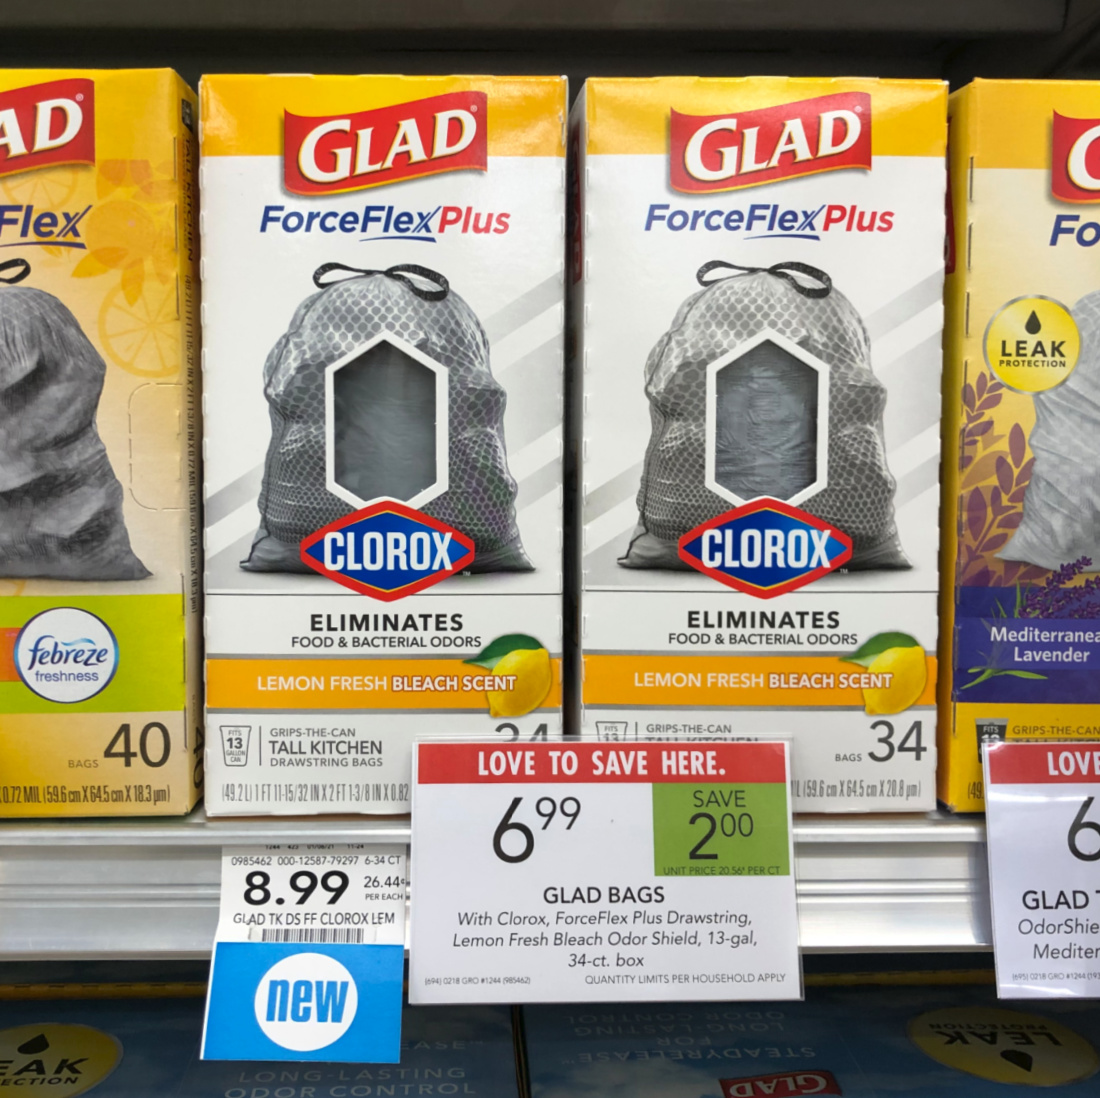 Glad ForceFlexPlus with Clorox Tall Kitchen Bags Just $5.99 At Publix on I Heart Publix